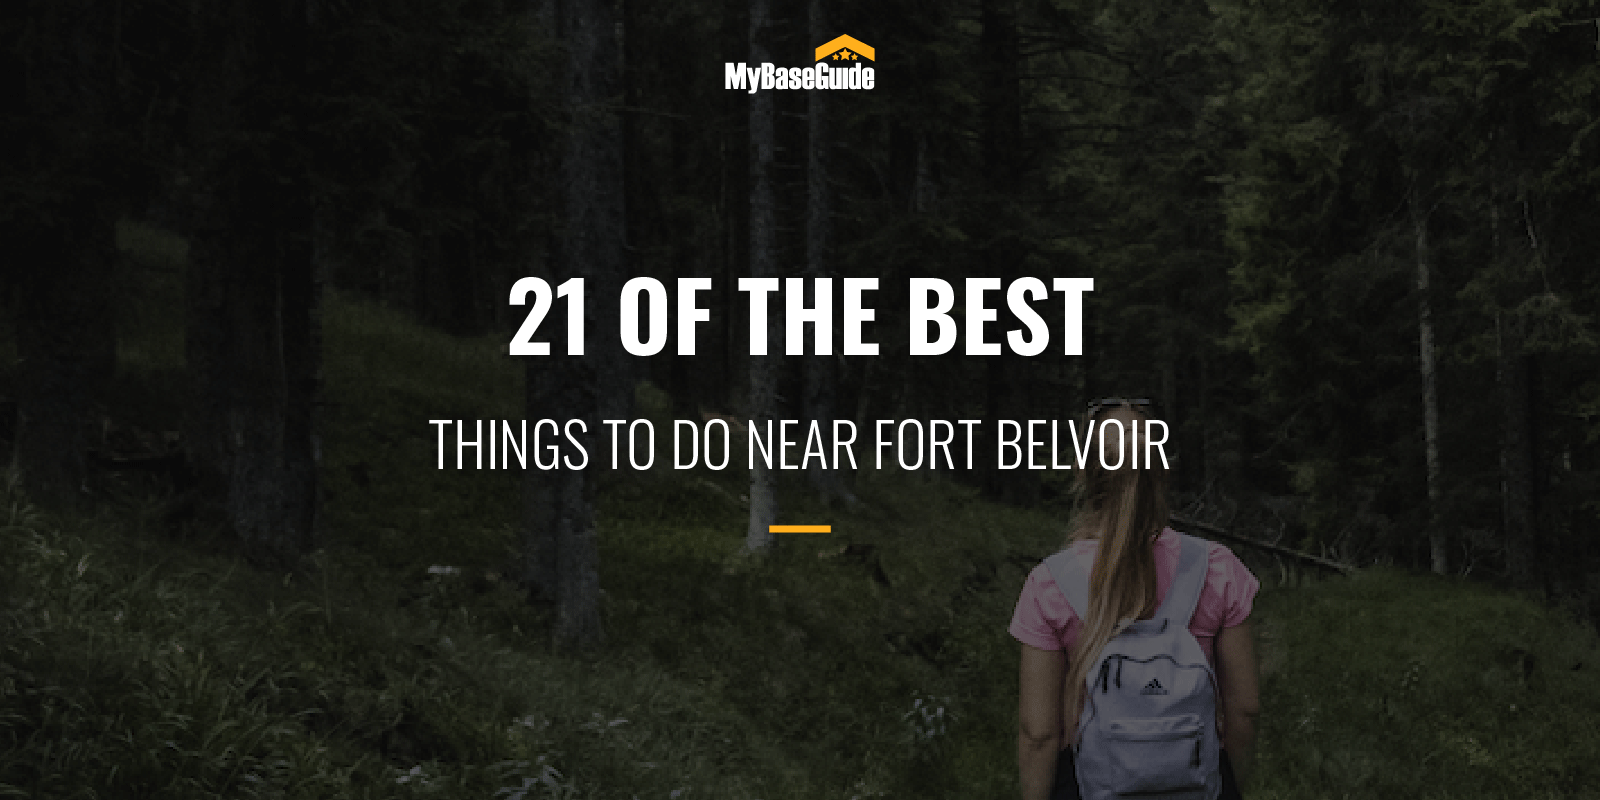 Best Things to do Near Fort Belvoir